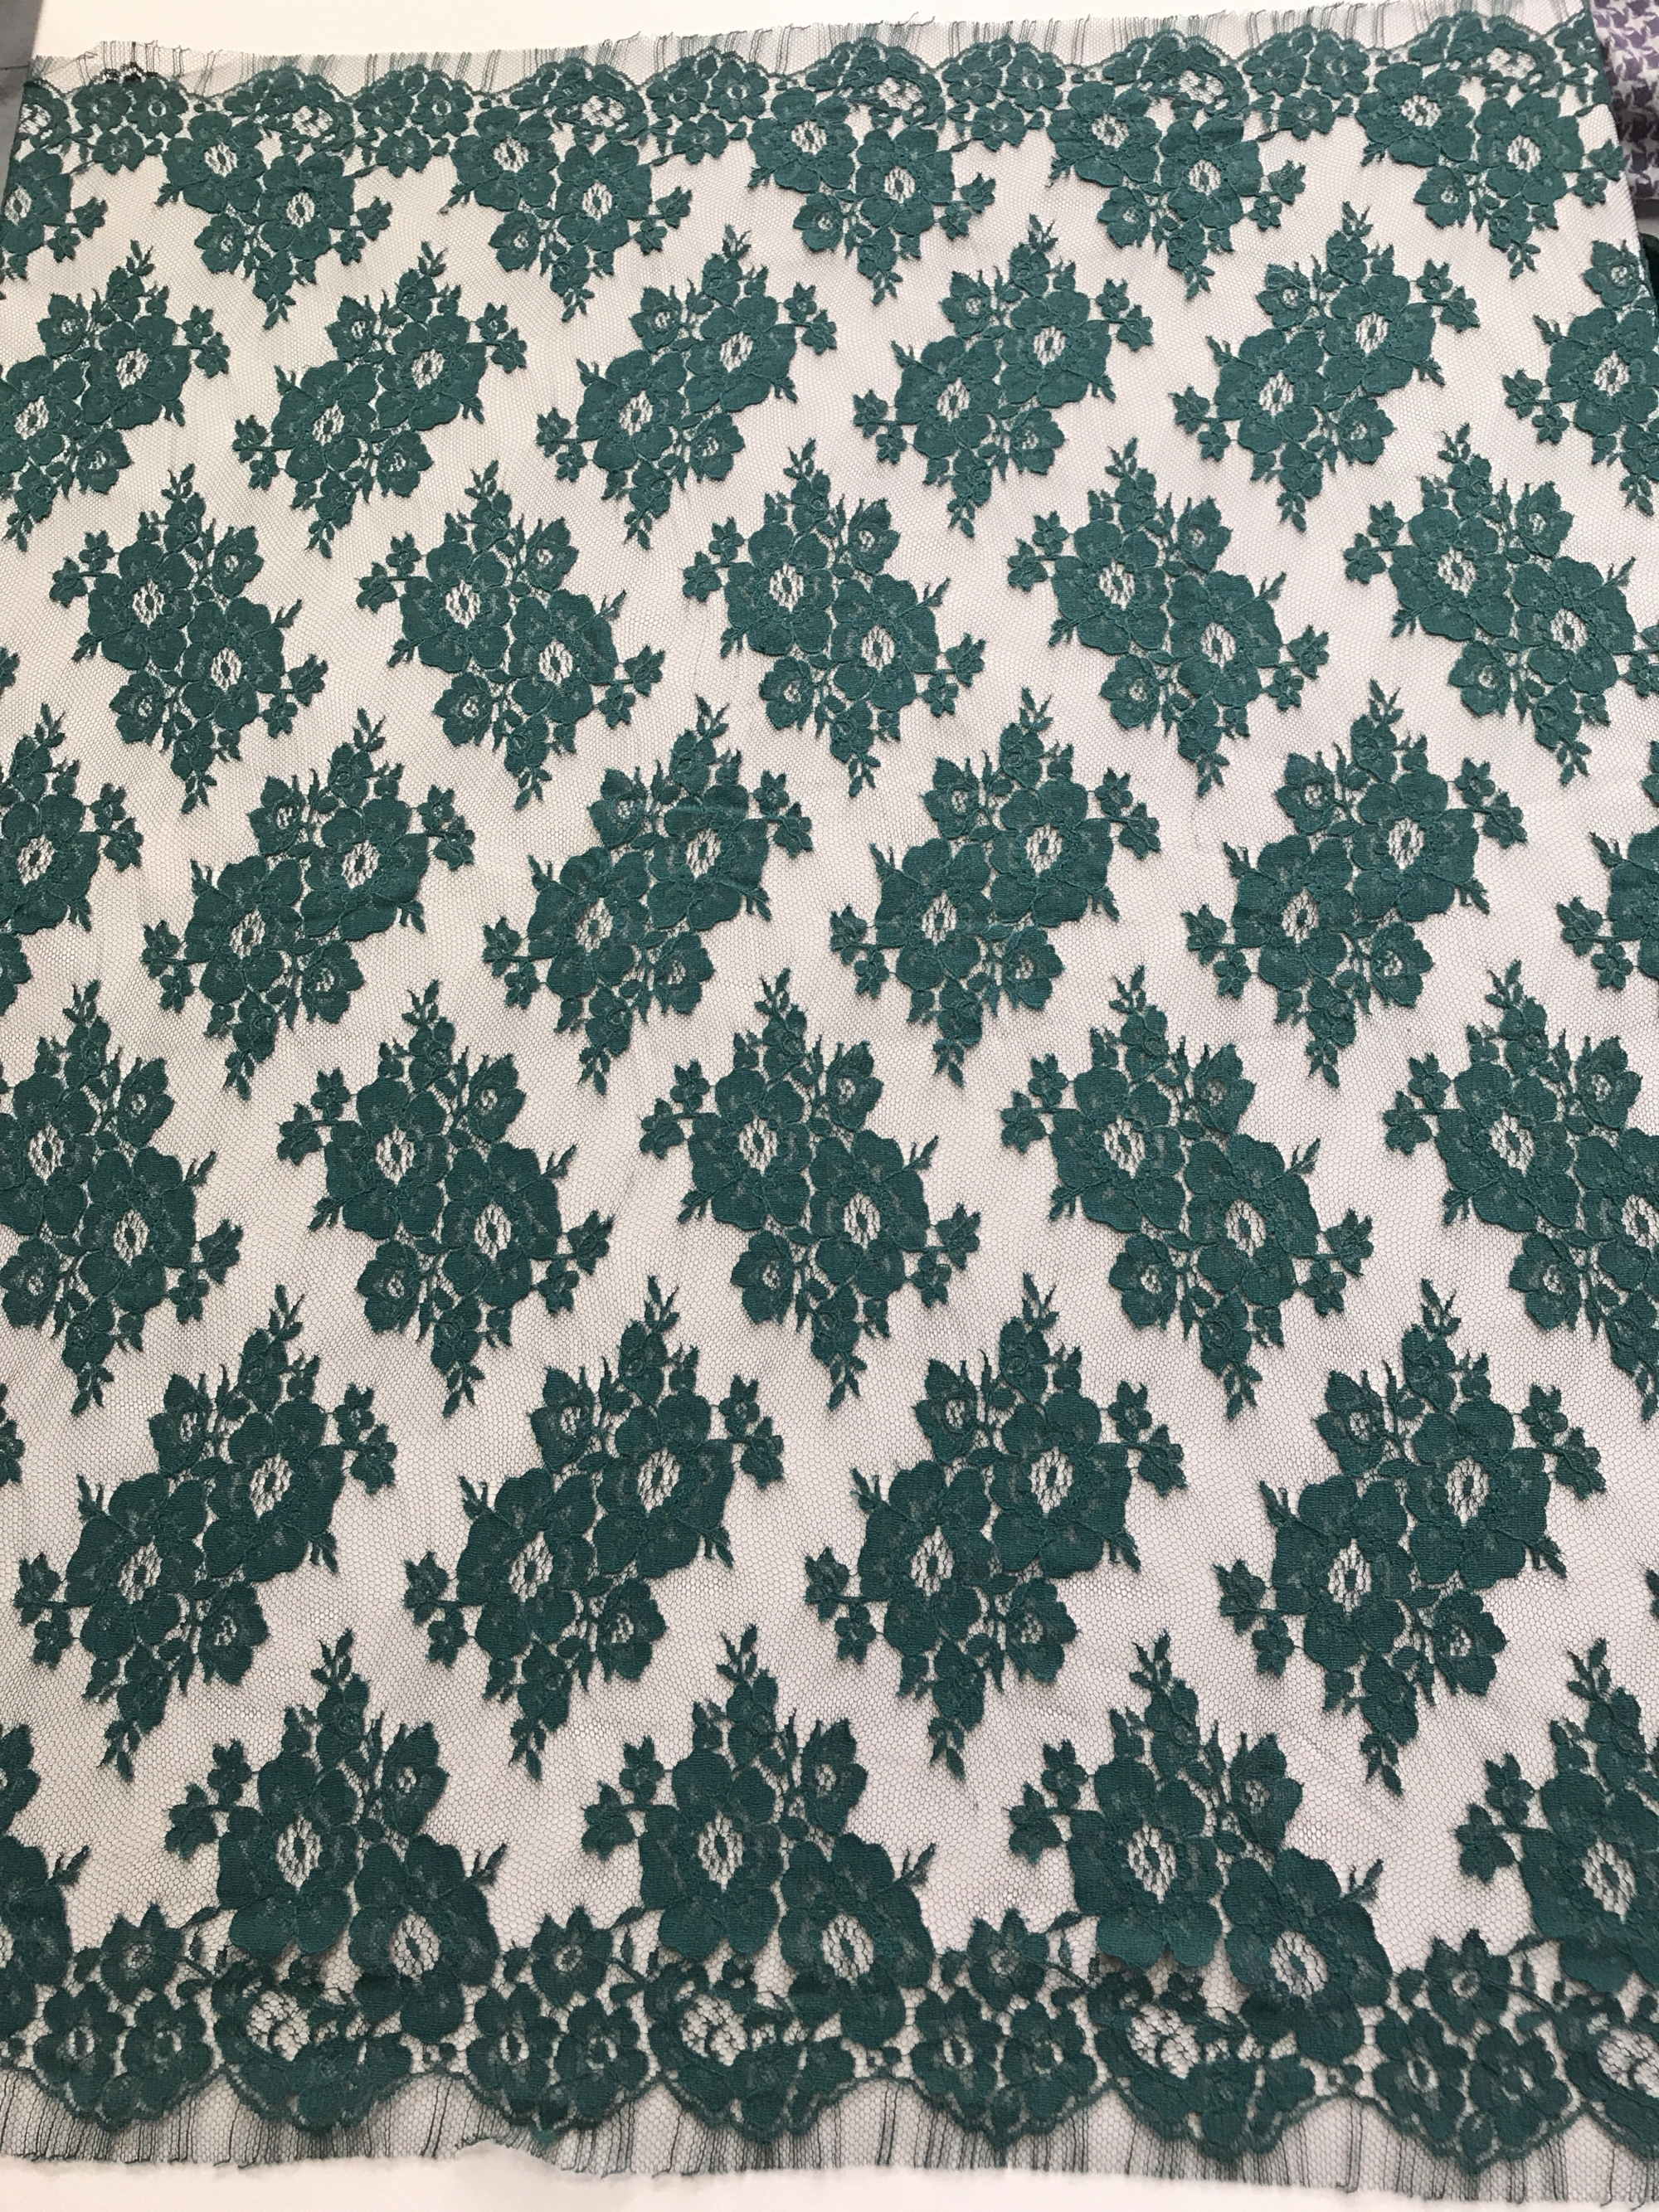 green french lace fabric